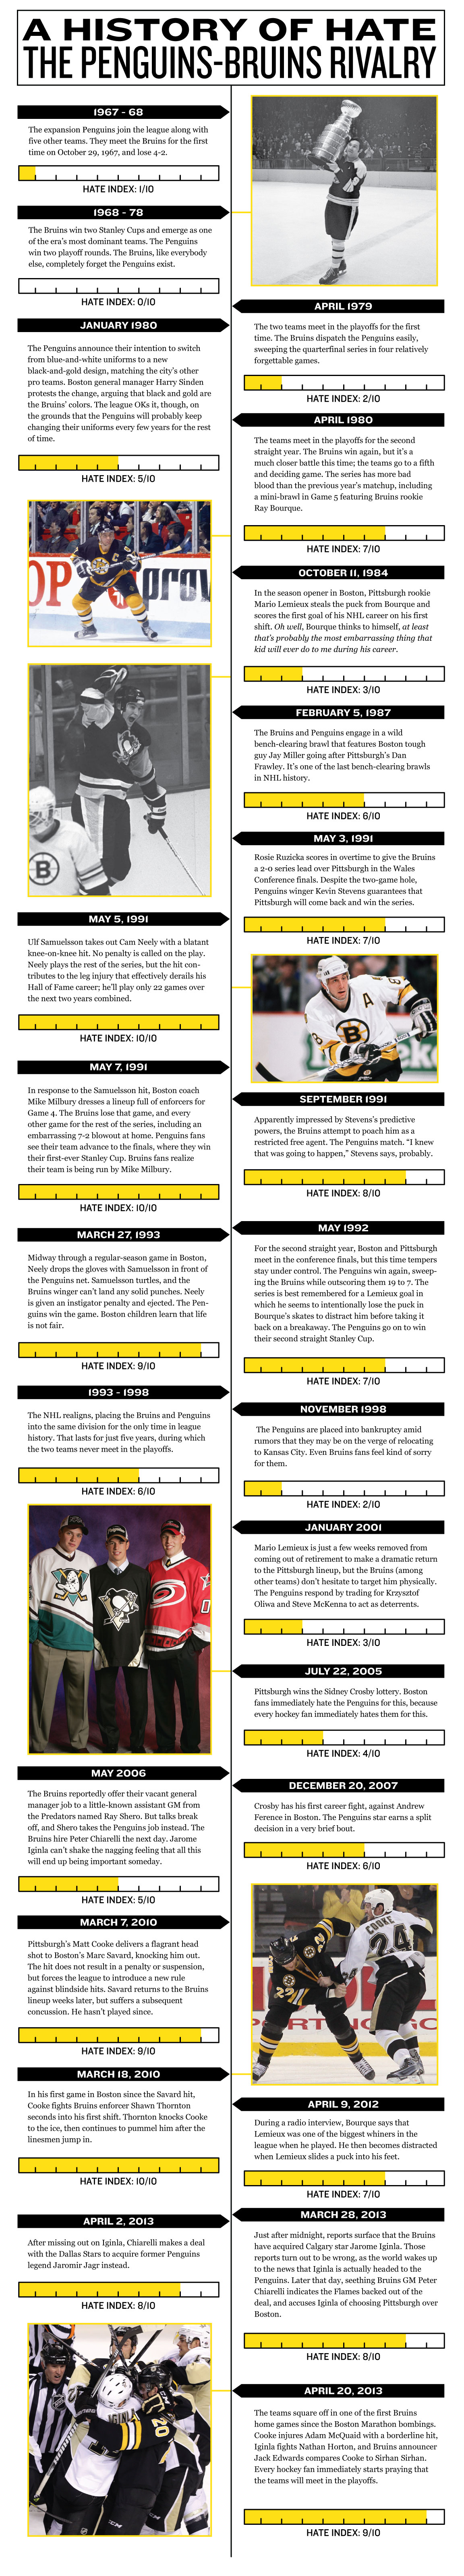 Bruins-Penguins Hate History